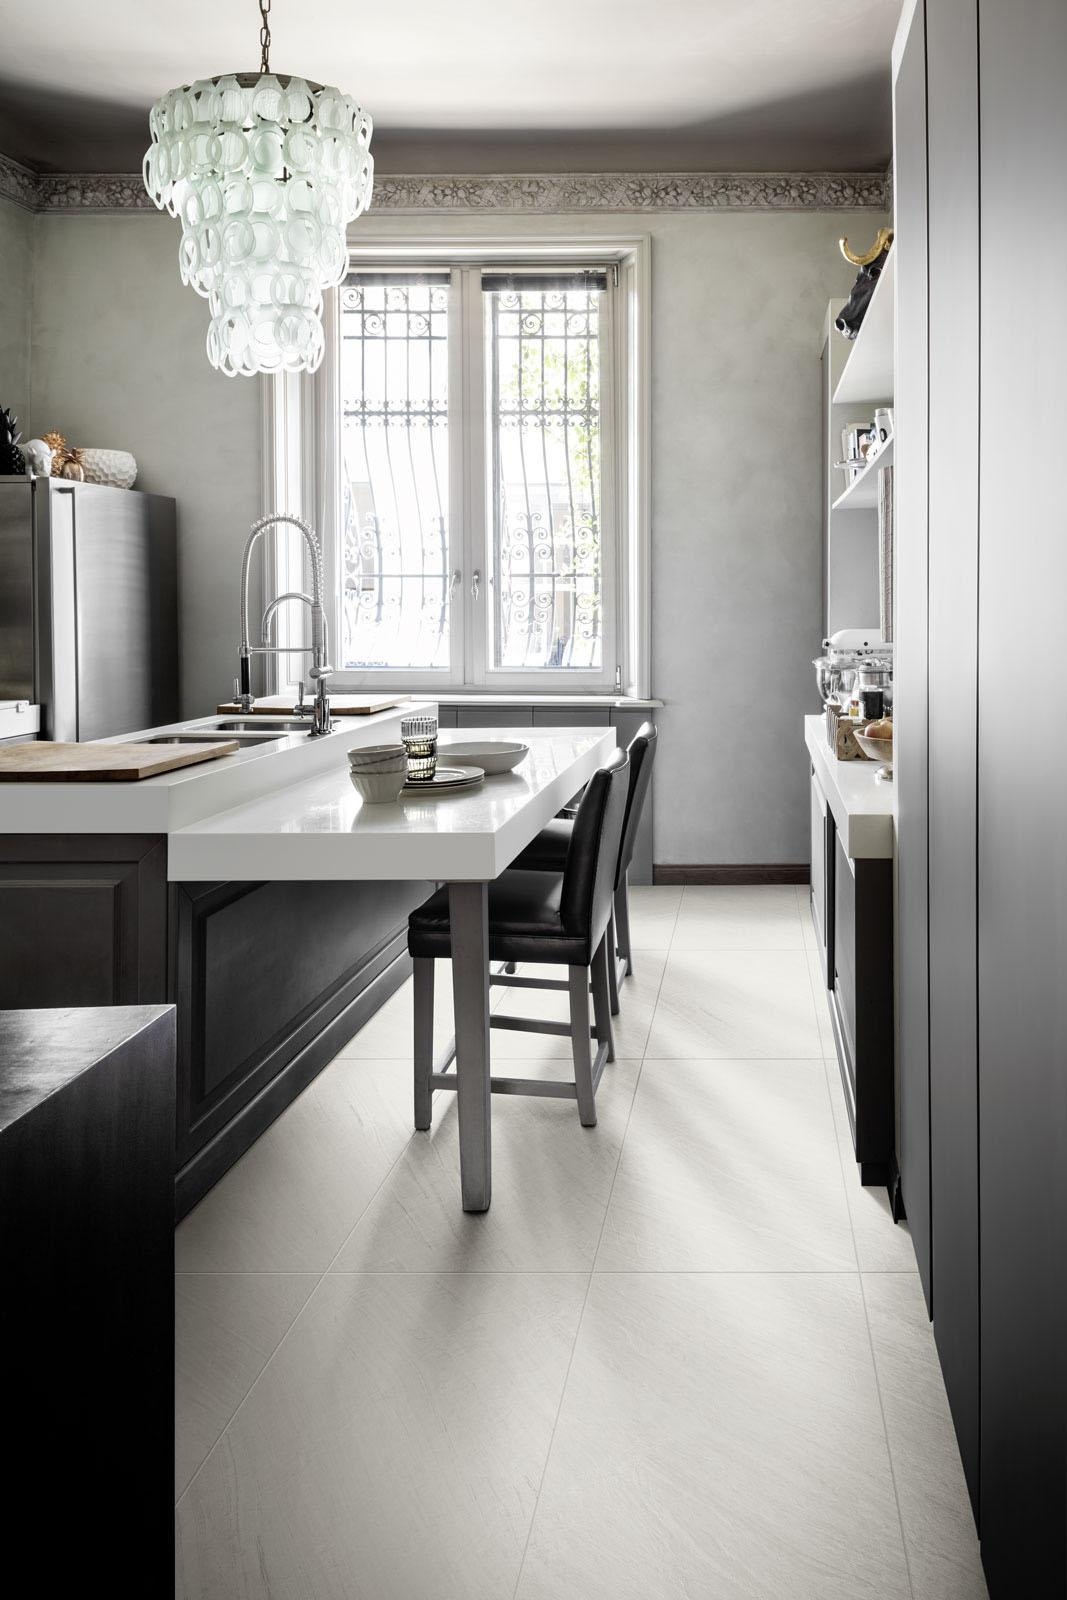 Colorful Marazzi Kitchens Image Collection - Kitchen Cabinets ...